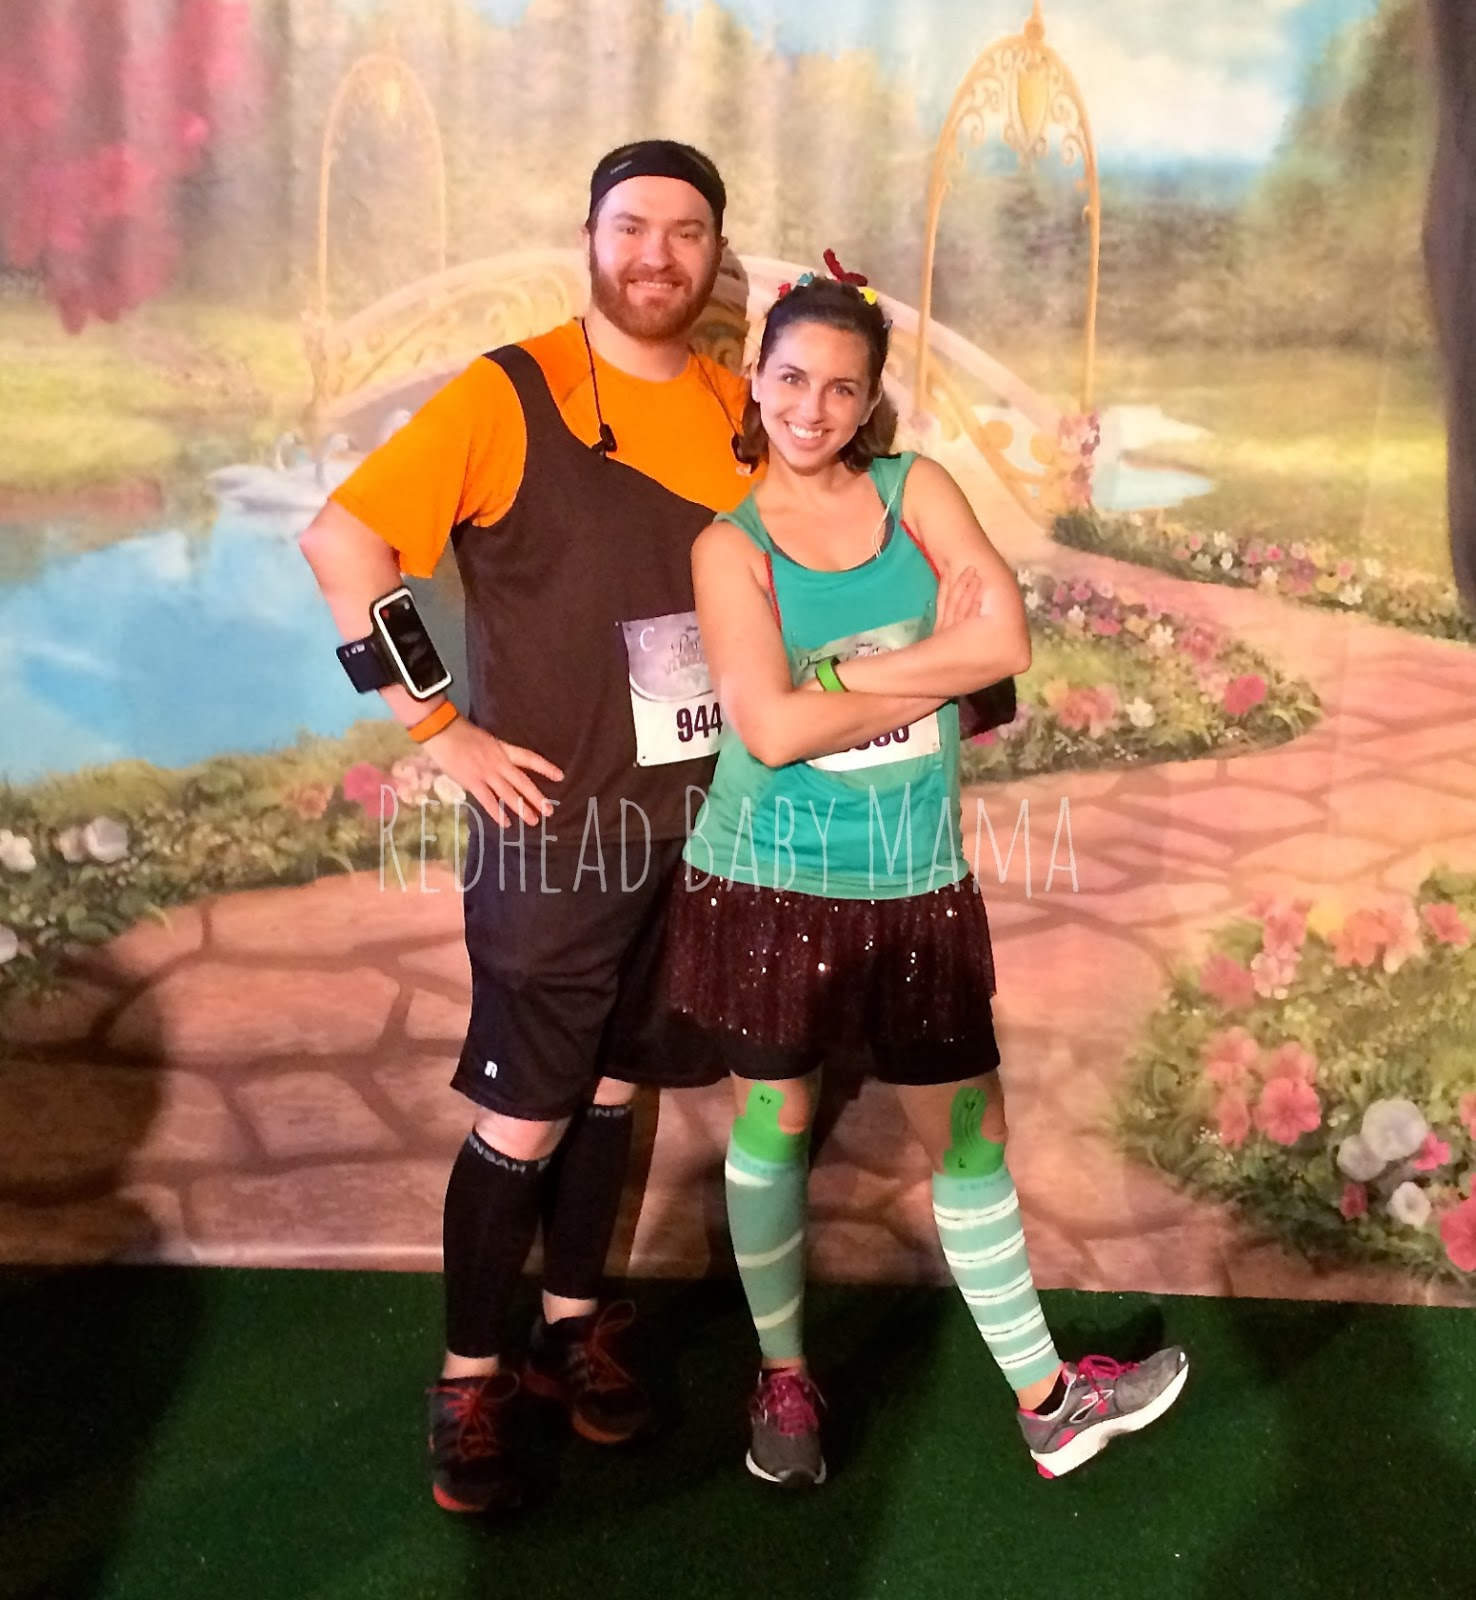 Vanellope Von Schweetz and Wreck it Ralph runDisney running Cosumes